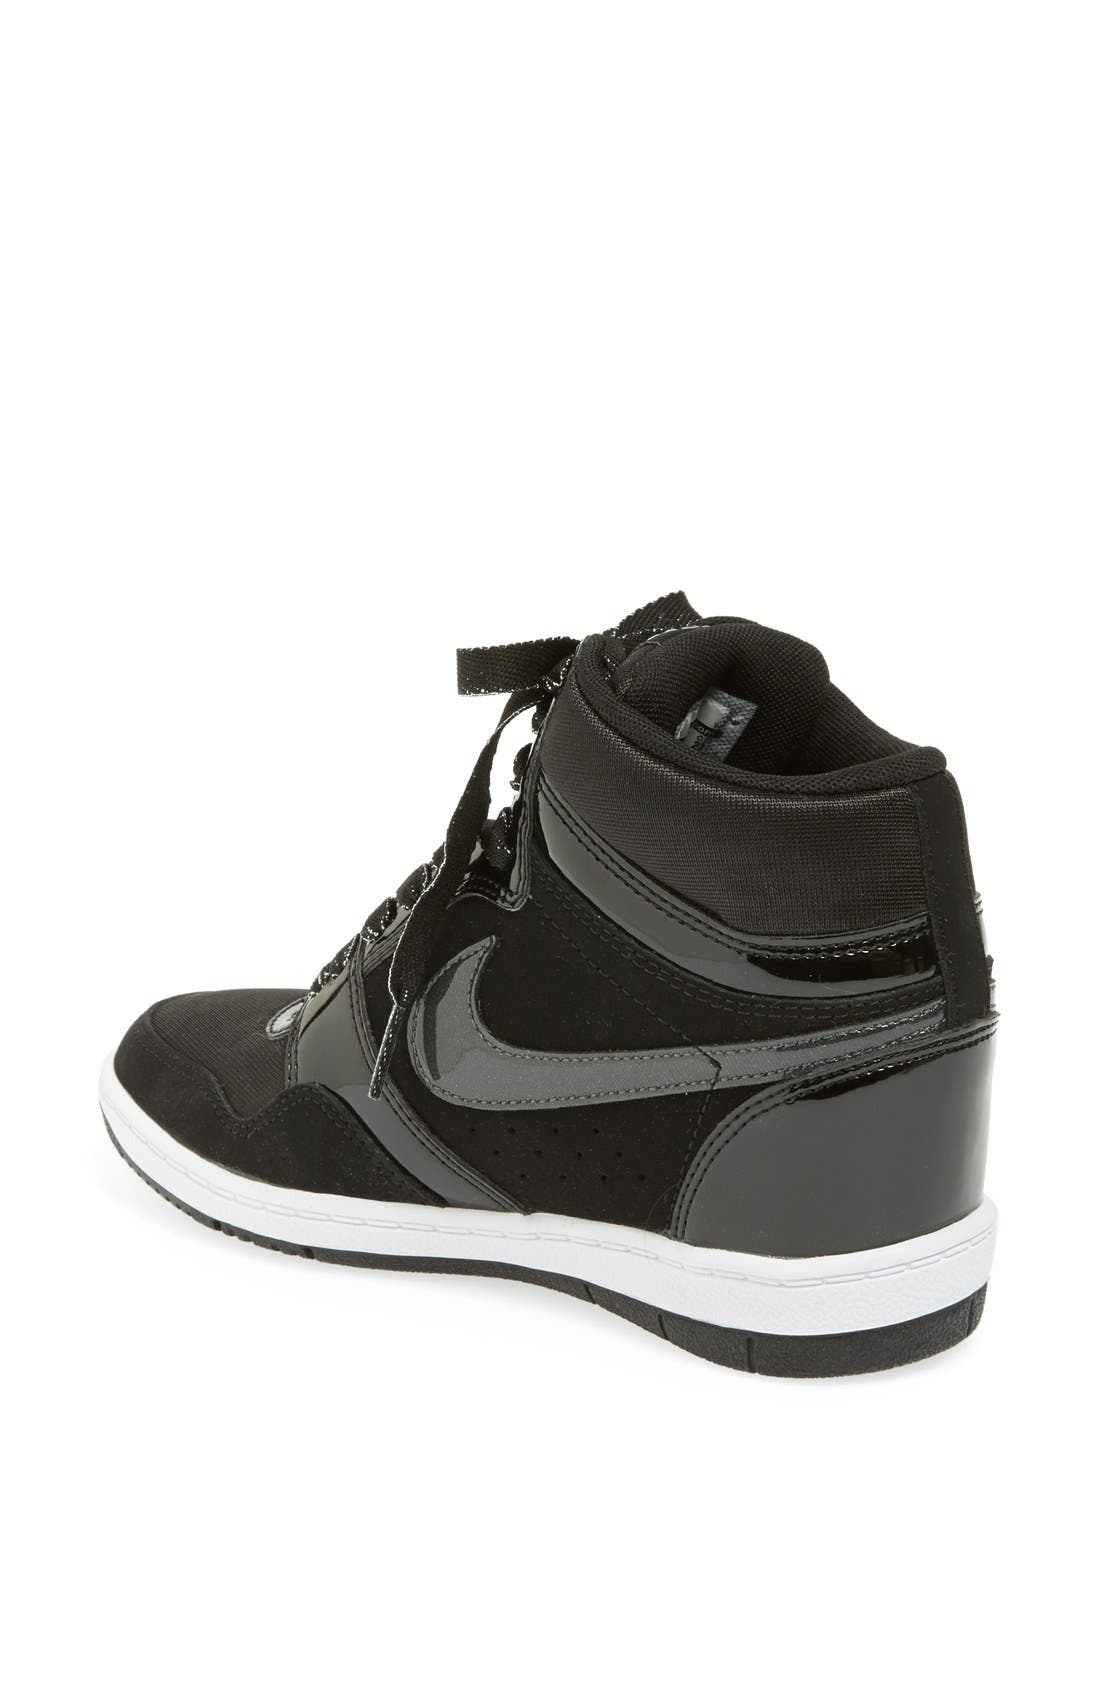 'Force Sky Hi' Wedge Sneaker,                             Alternate thumbnail 3, color,                             001